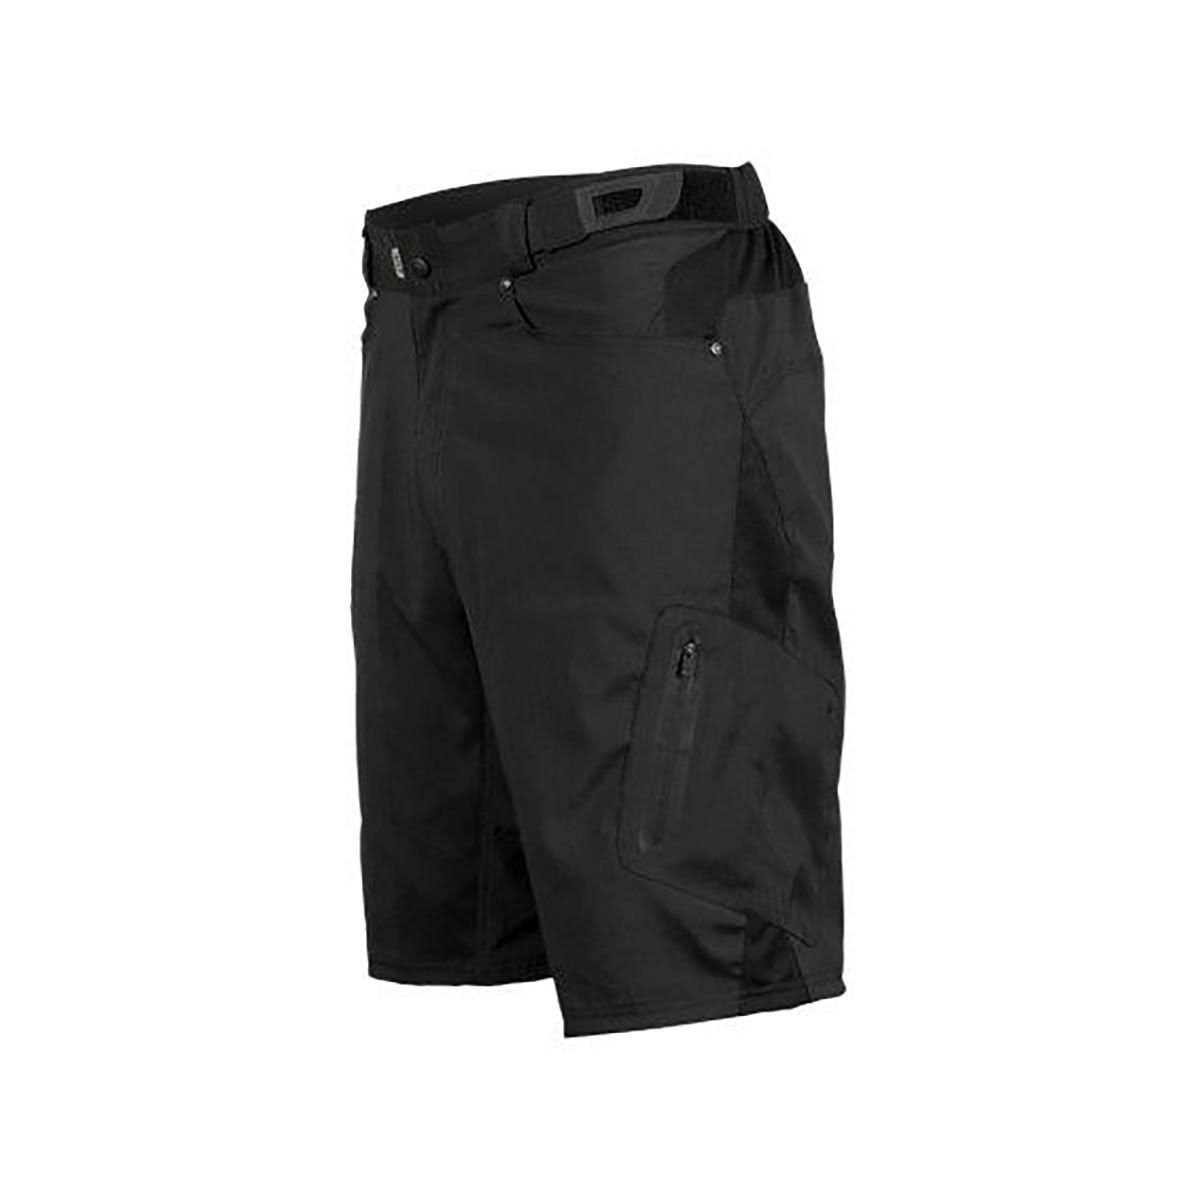 Zoic Men's Ether Cycling Shorts - Black, XLarge